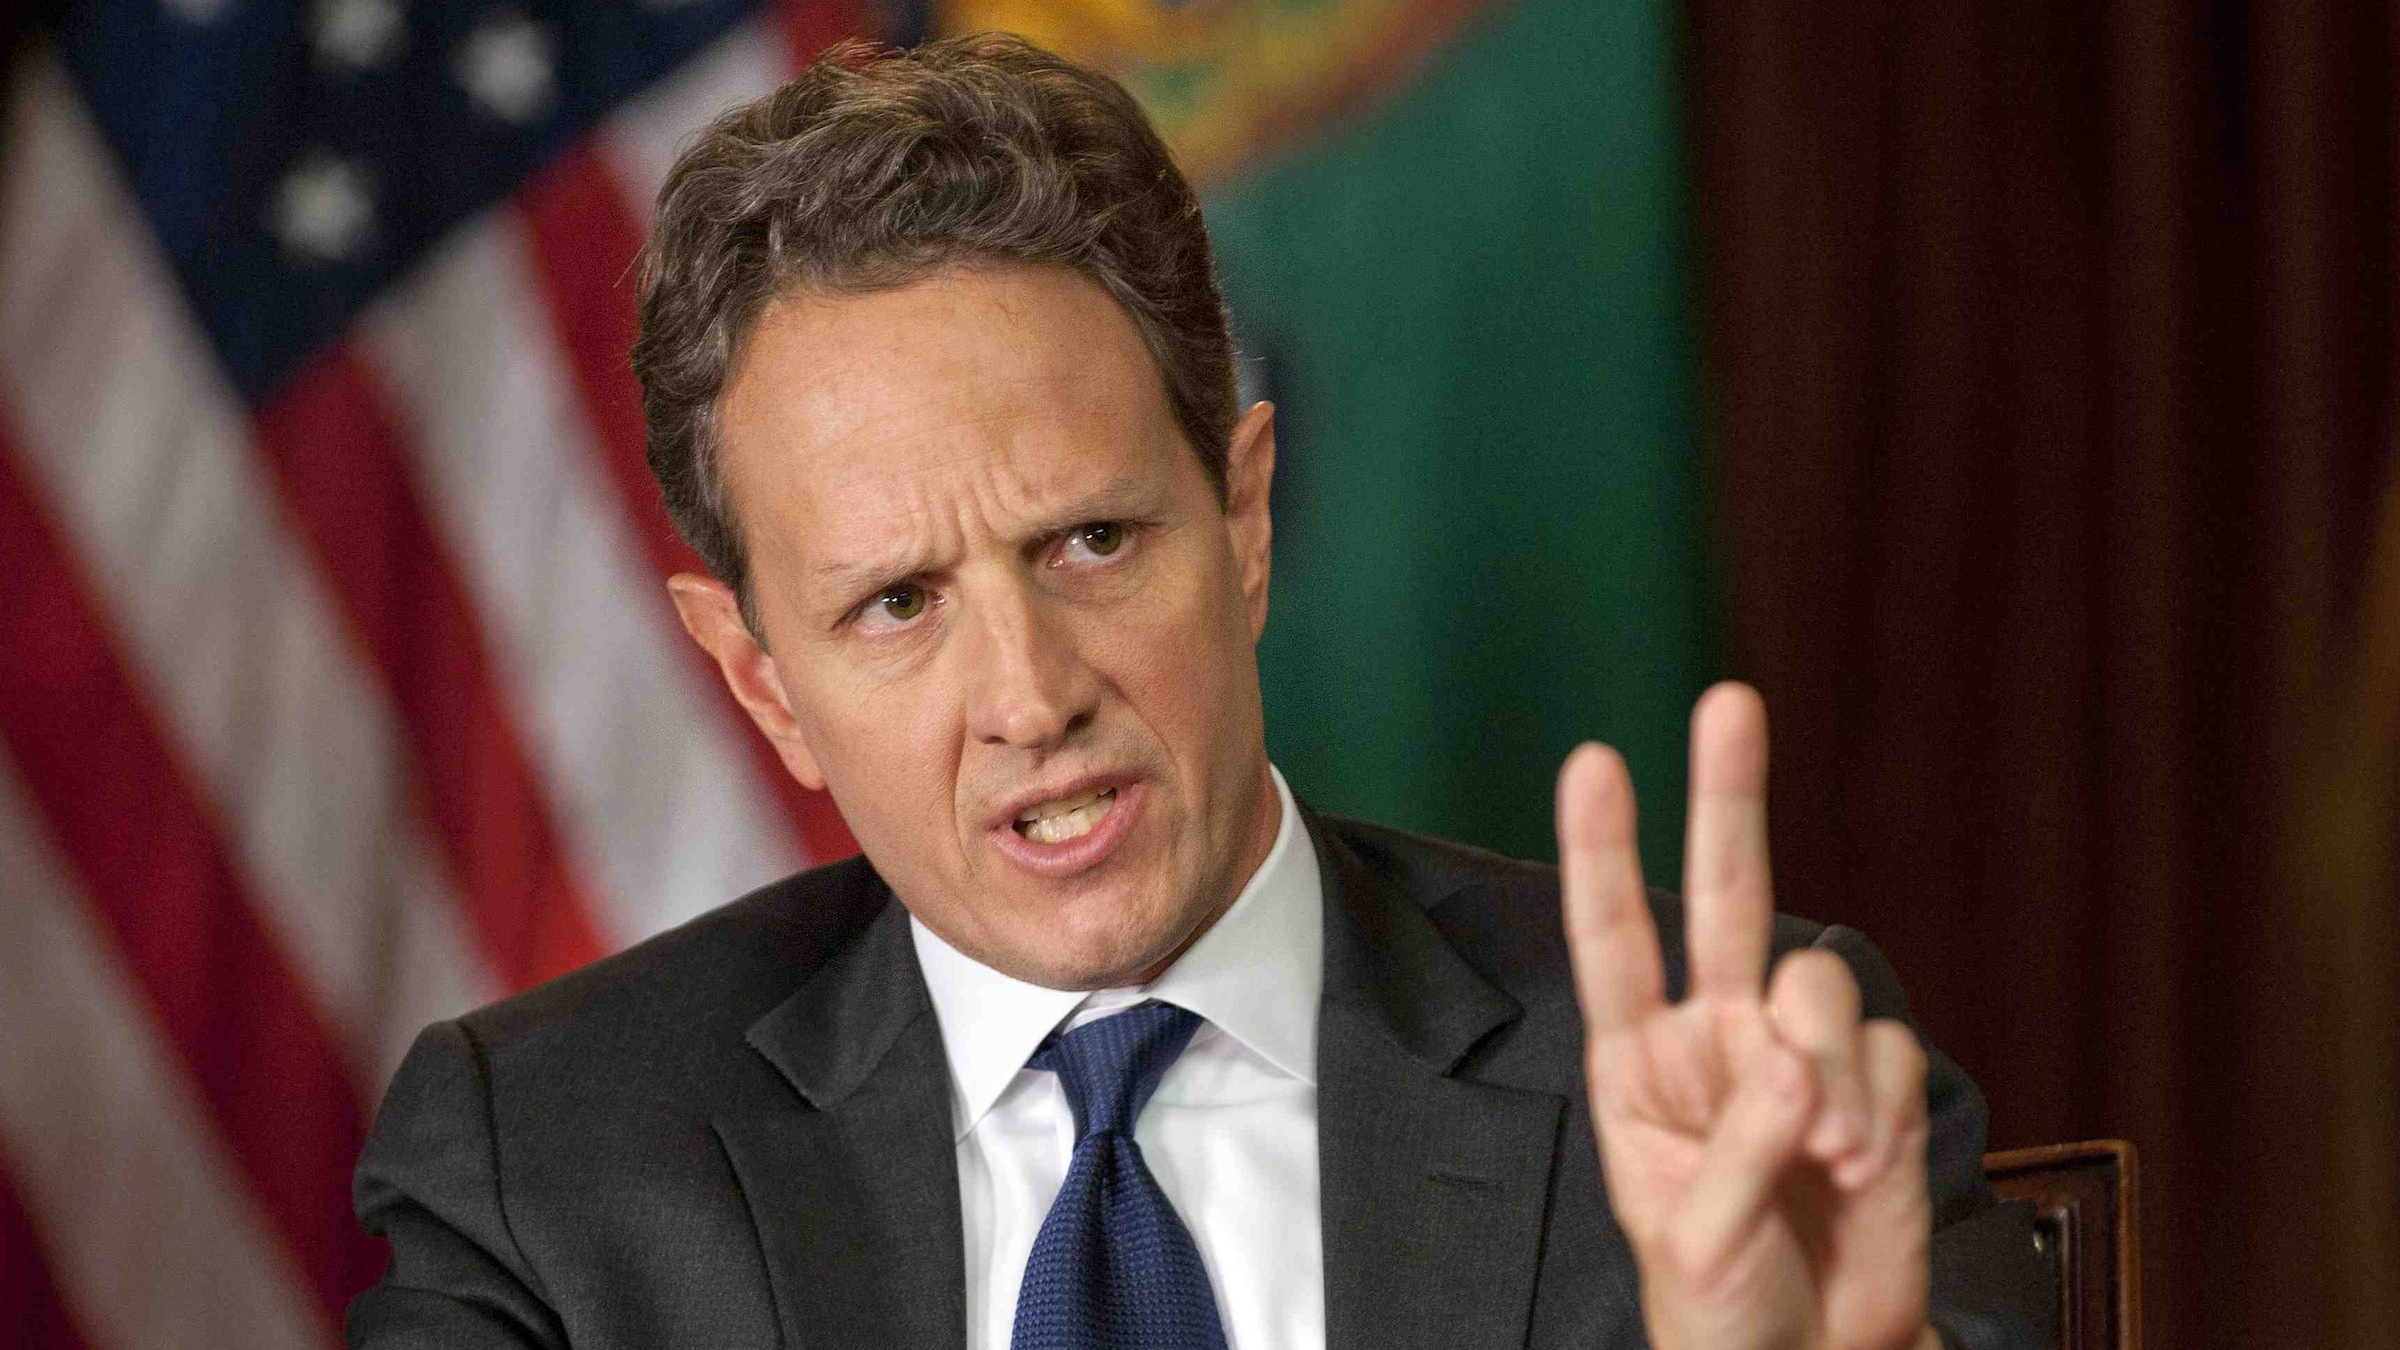 "In this Nov. 30, 2012, photo provided by CBS News Treasury Secretary Timothy Geithner answers questions about averting the ""fiscal cliff"" on an episode of  ìFace the Nationî on Sunday, Dec. 2, 2012  Geithner said Republicans have to stop using fuzzy ìpolitical mathî and say how much they are willing to raise tax rates on the wealthiest 2 percent of Americans and then specify the spending cuts they want. (AP Photo/CBS News, Chris Usher)"